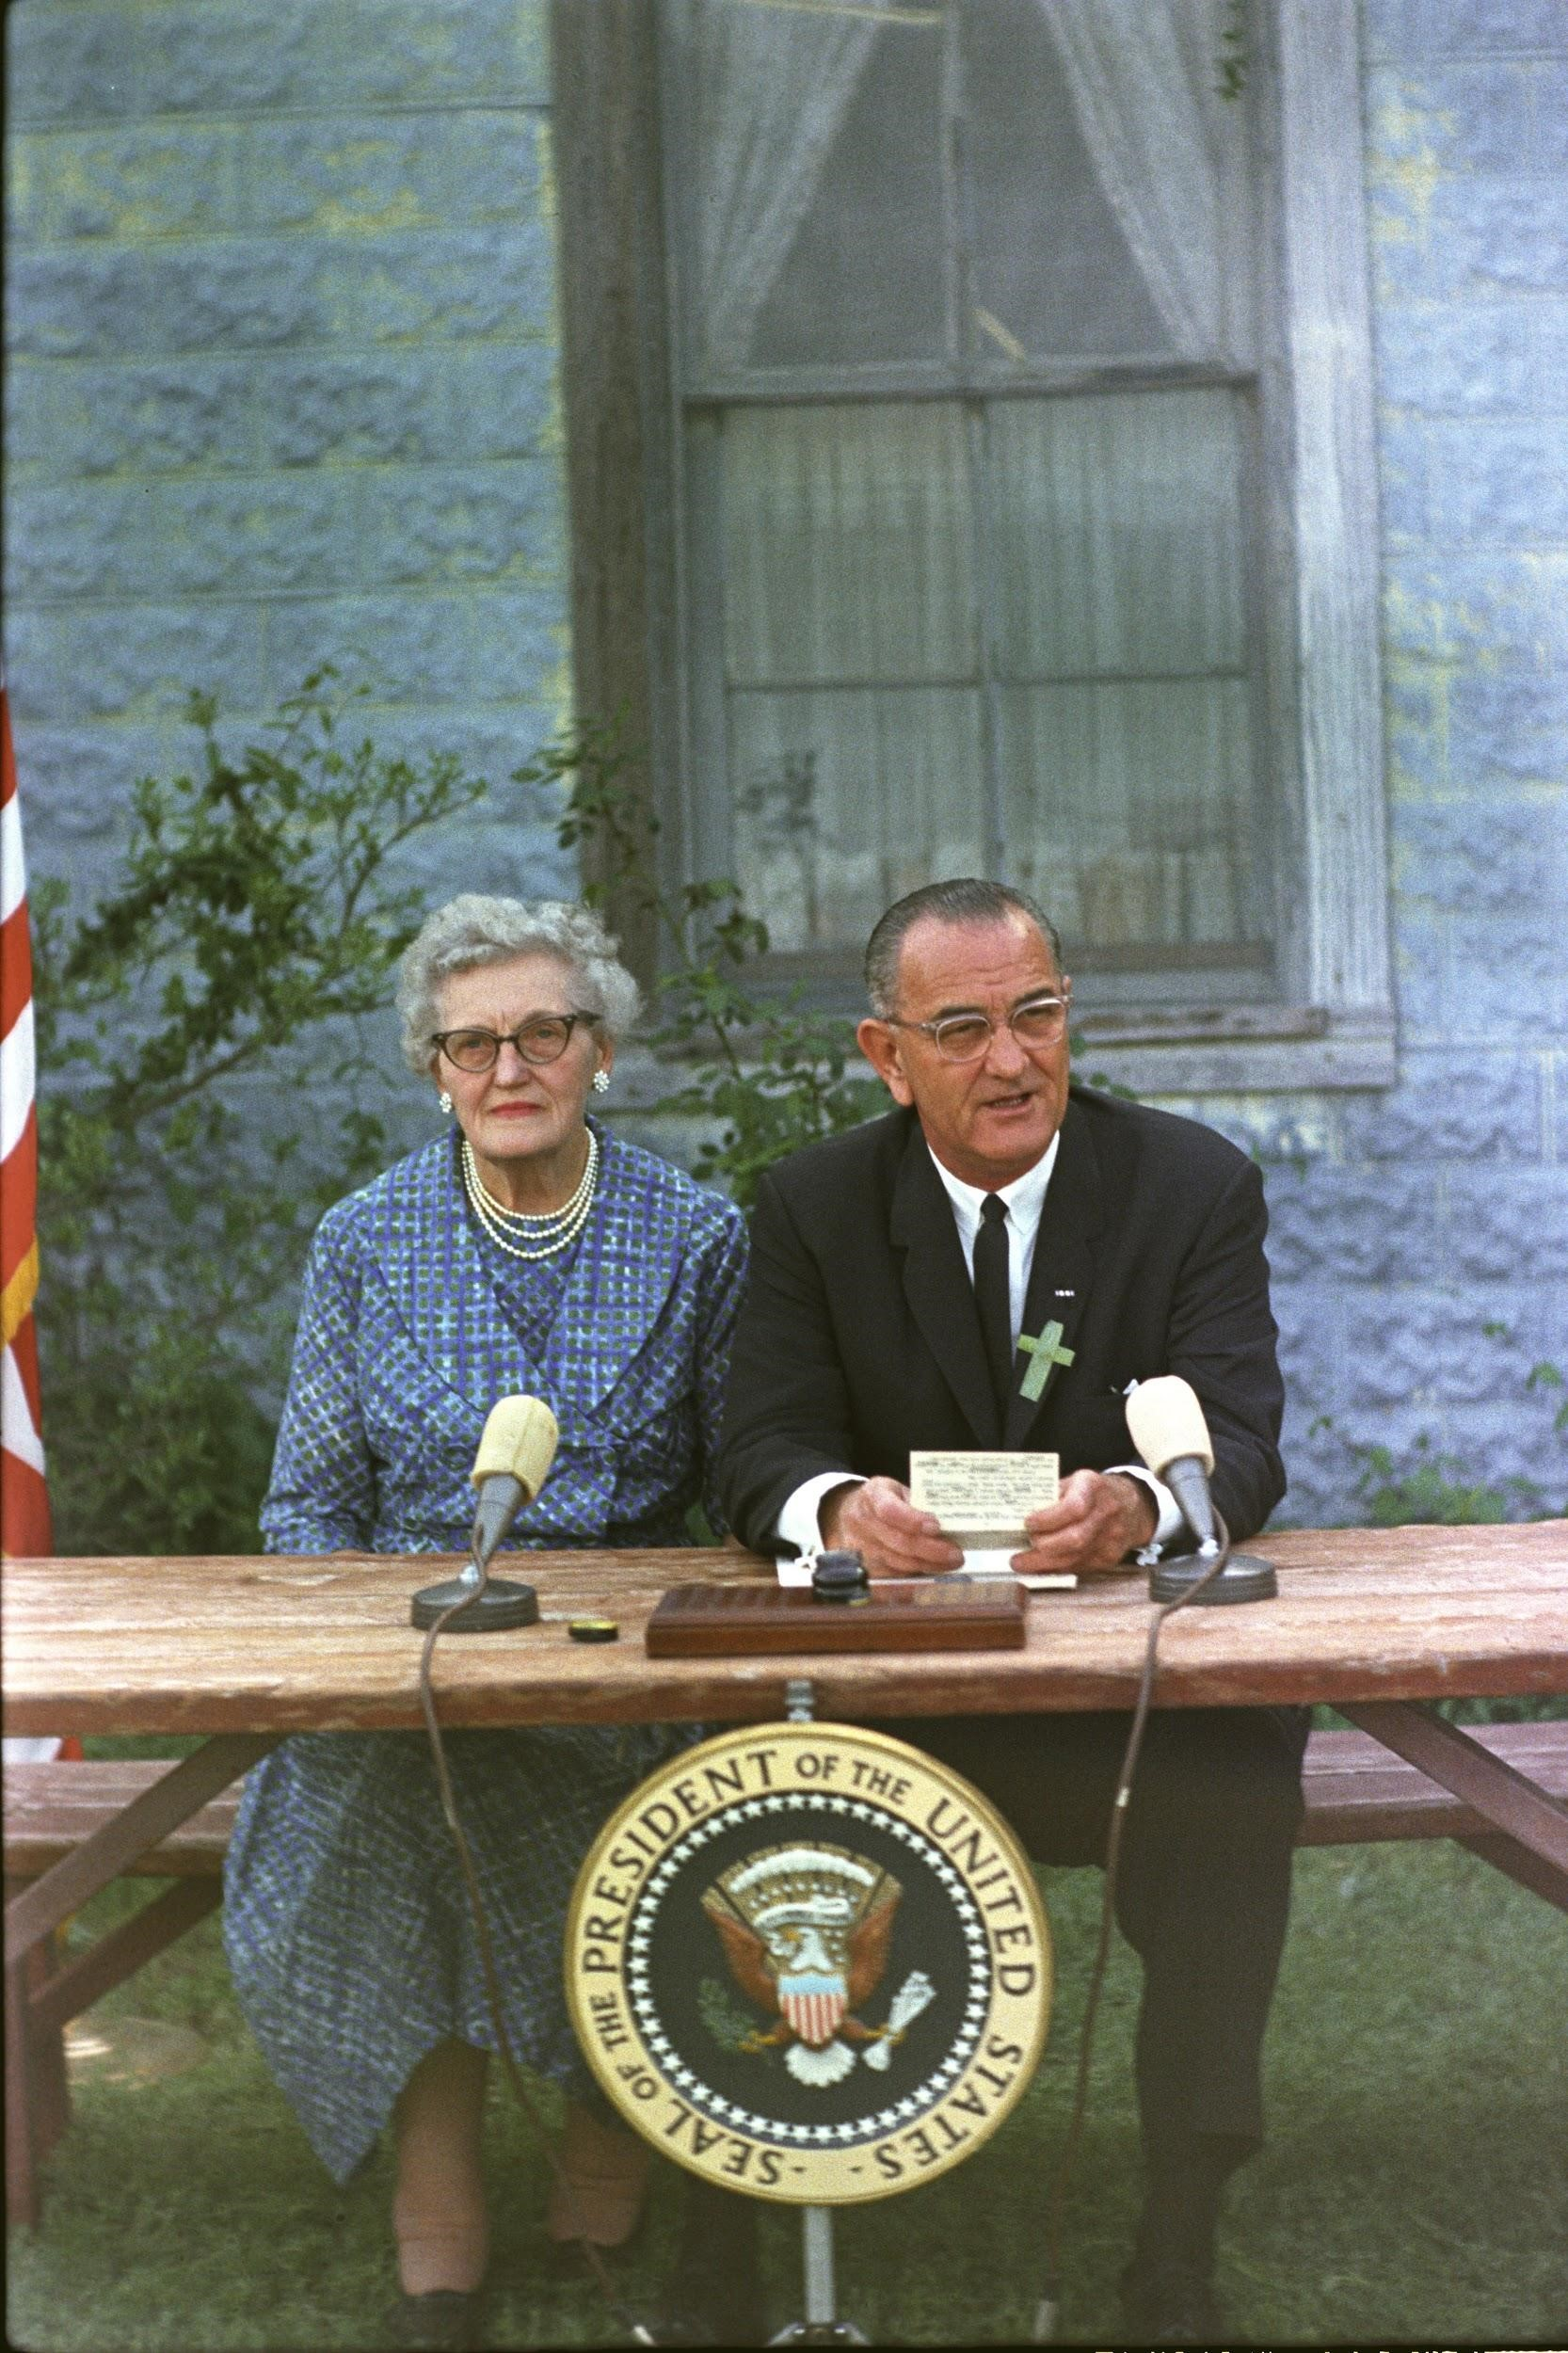 Johnson signed the Elementary and Secondary Education Act in his hometown of Johnson City, Texas, alongside his childhood schoolteacher, Kate Deadrich Loney. The Act ultimately allocated more than $1 billion for the purchase of books and library materials, the creation of educational programs for disadvantaged children, and other initiatives to promote quality education in public schools.